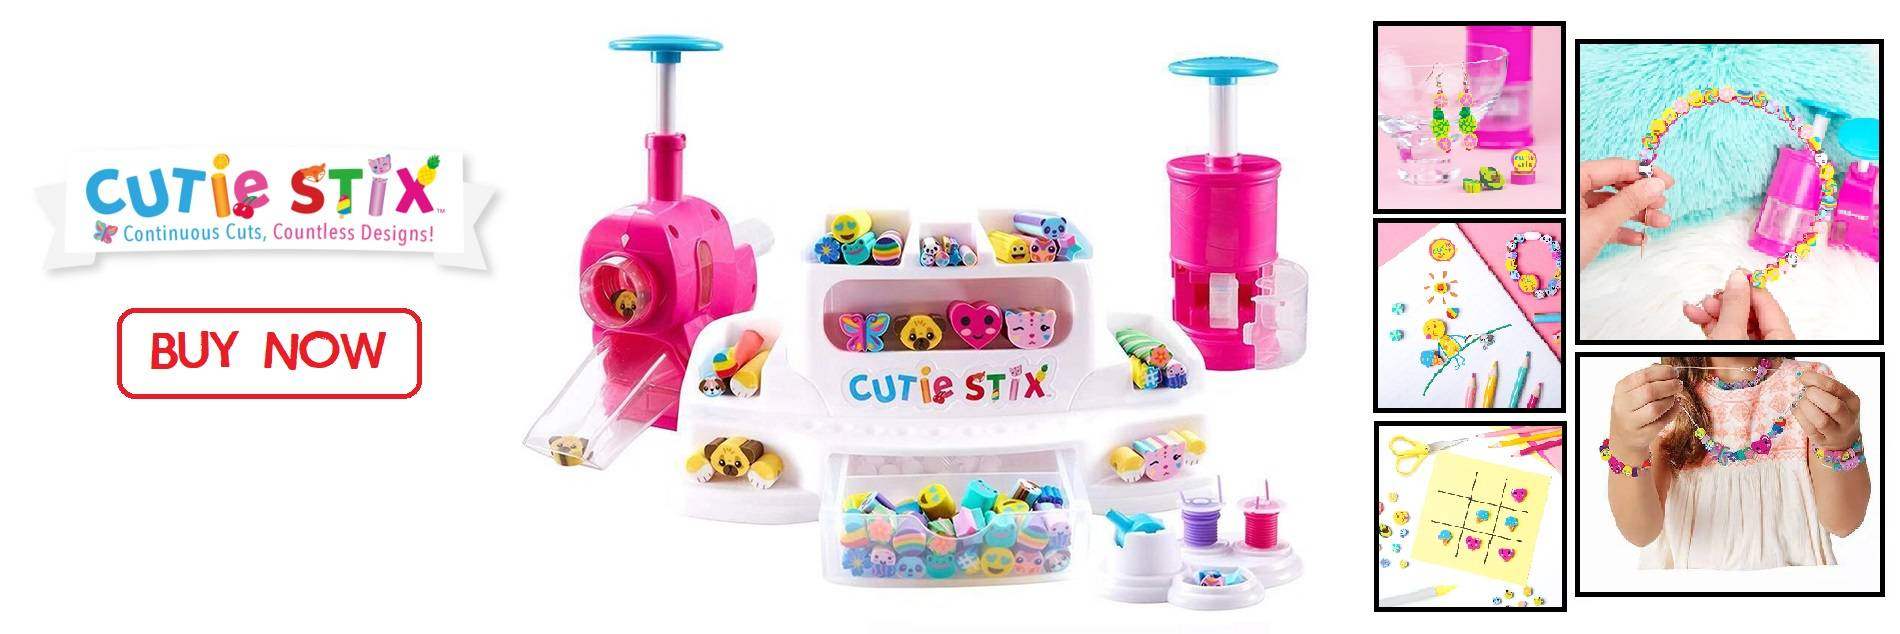 Cutie Stix Kids DIY Accessories Playset